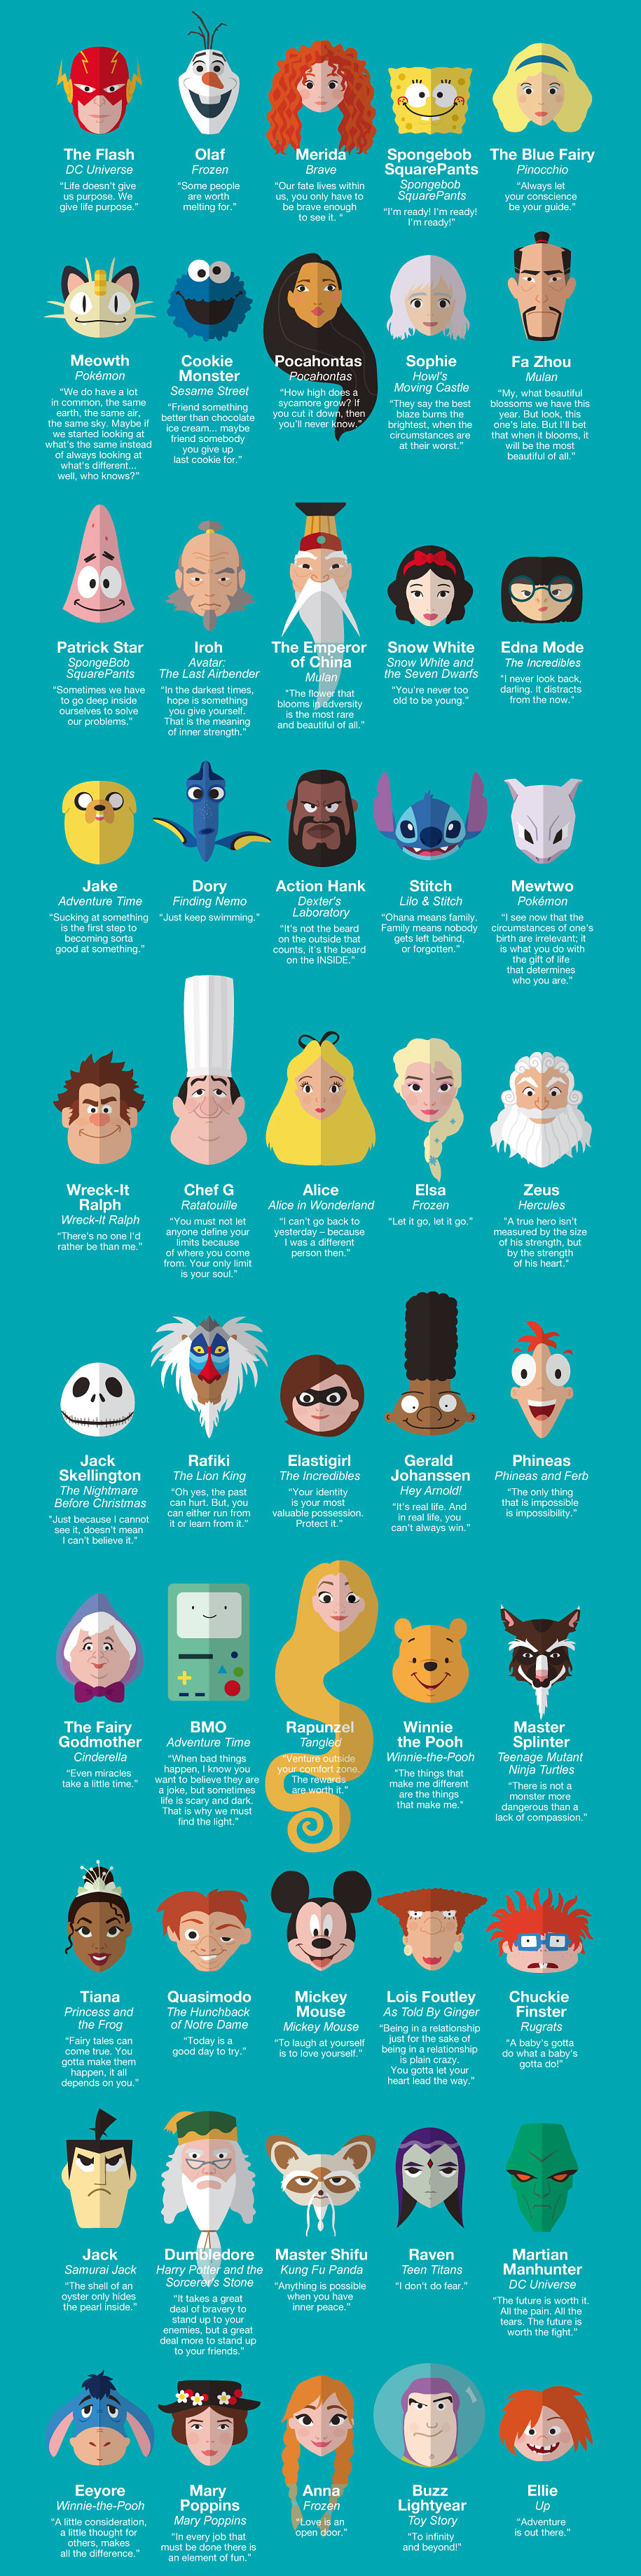 cartoons-life-advice-50-beloved-characters-kids-entertainment-aaa-state-play